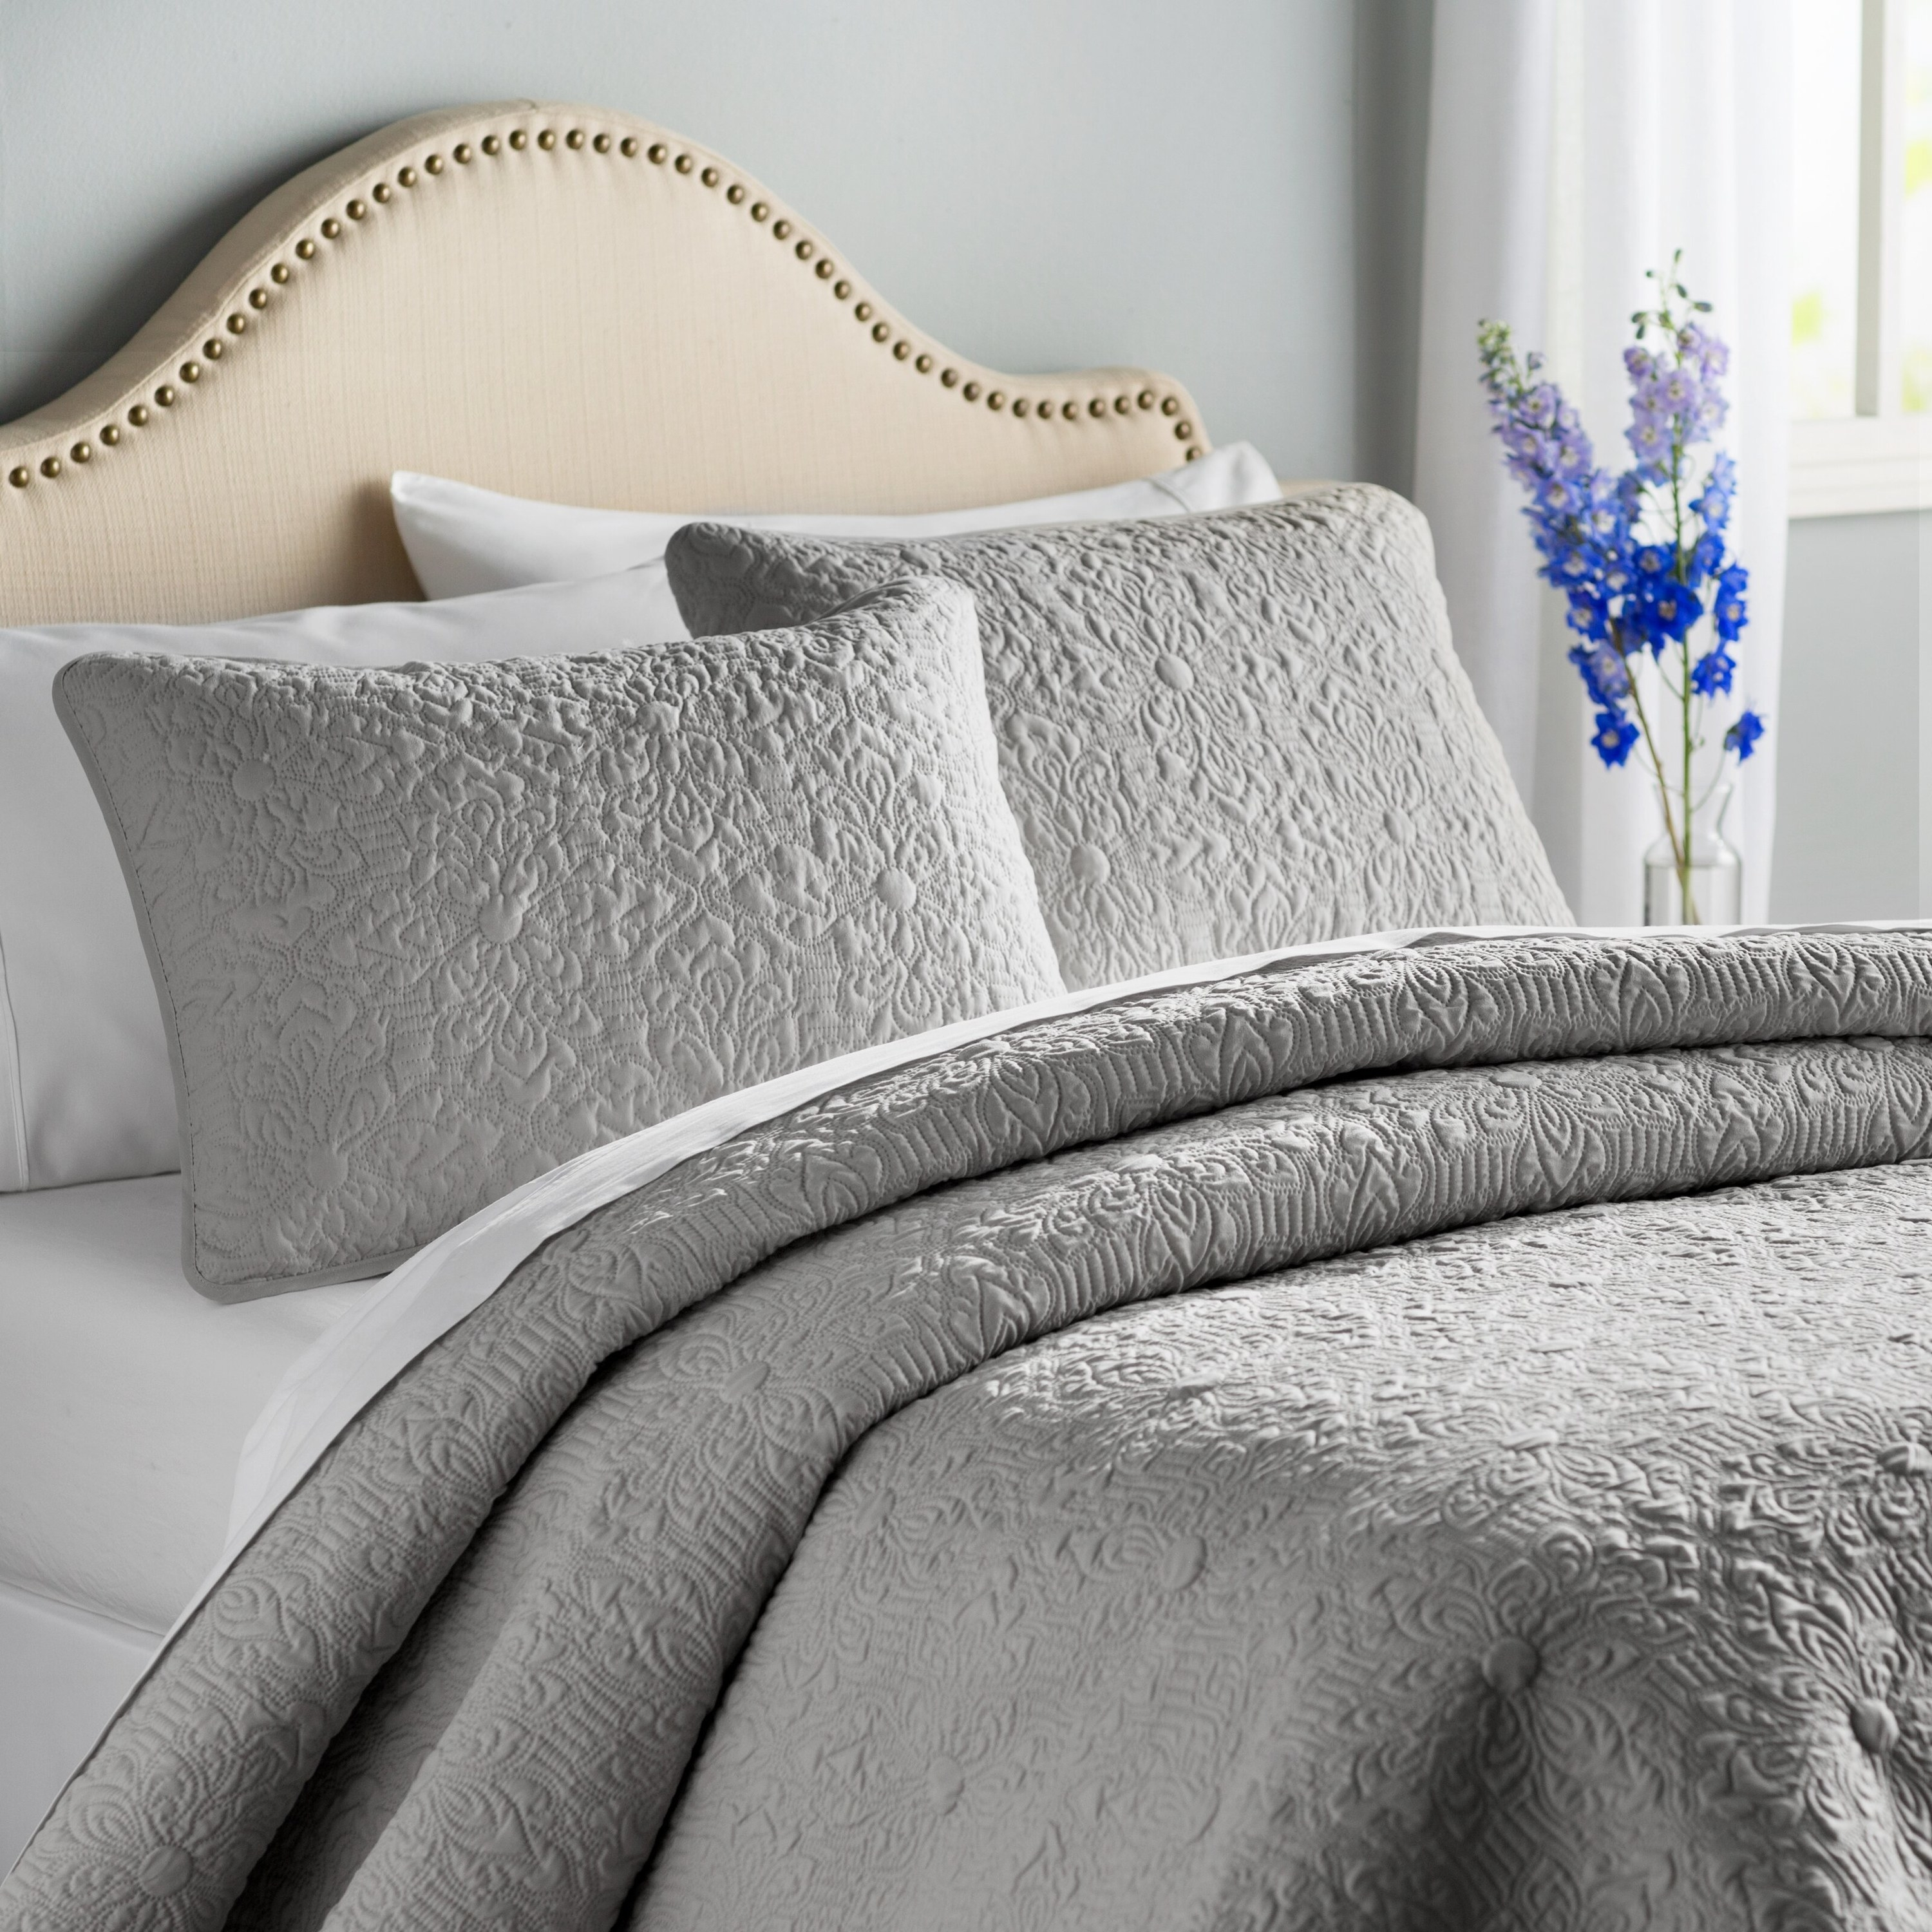 A gray quilted comforter with matching pillow shams set up on a bed with white sheets